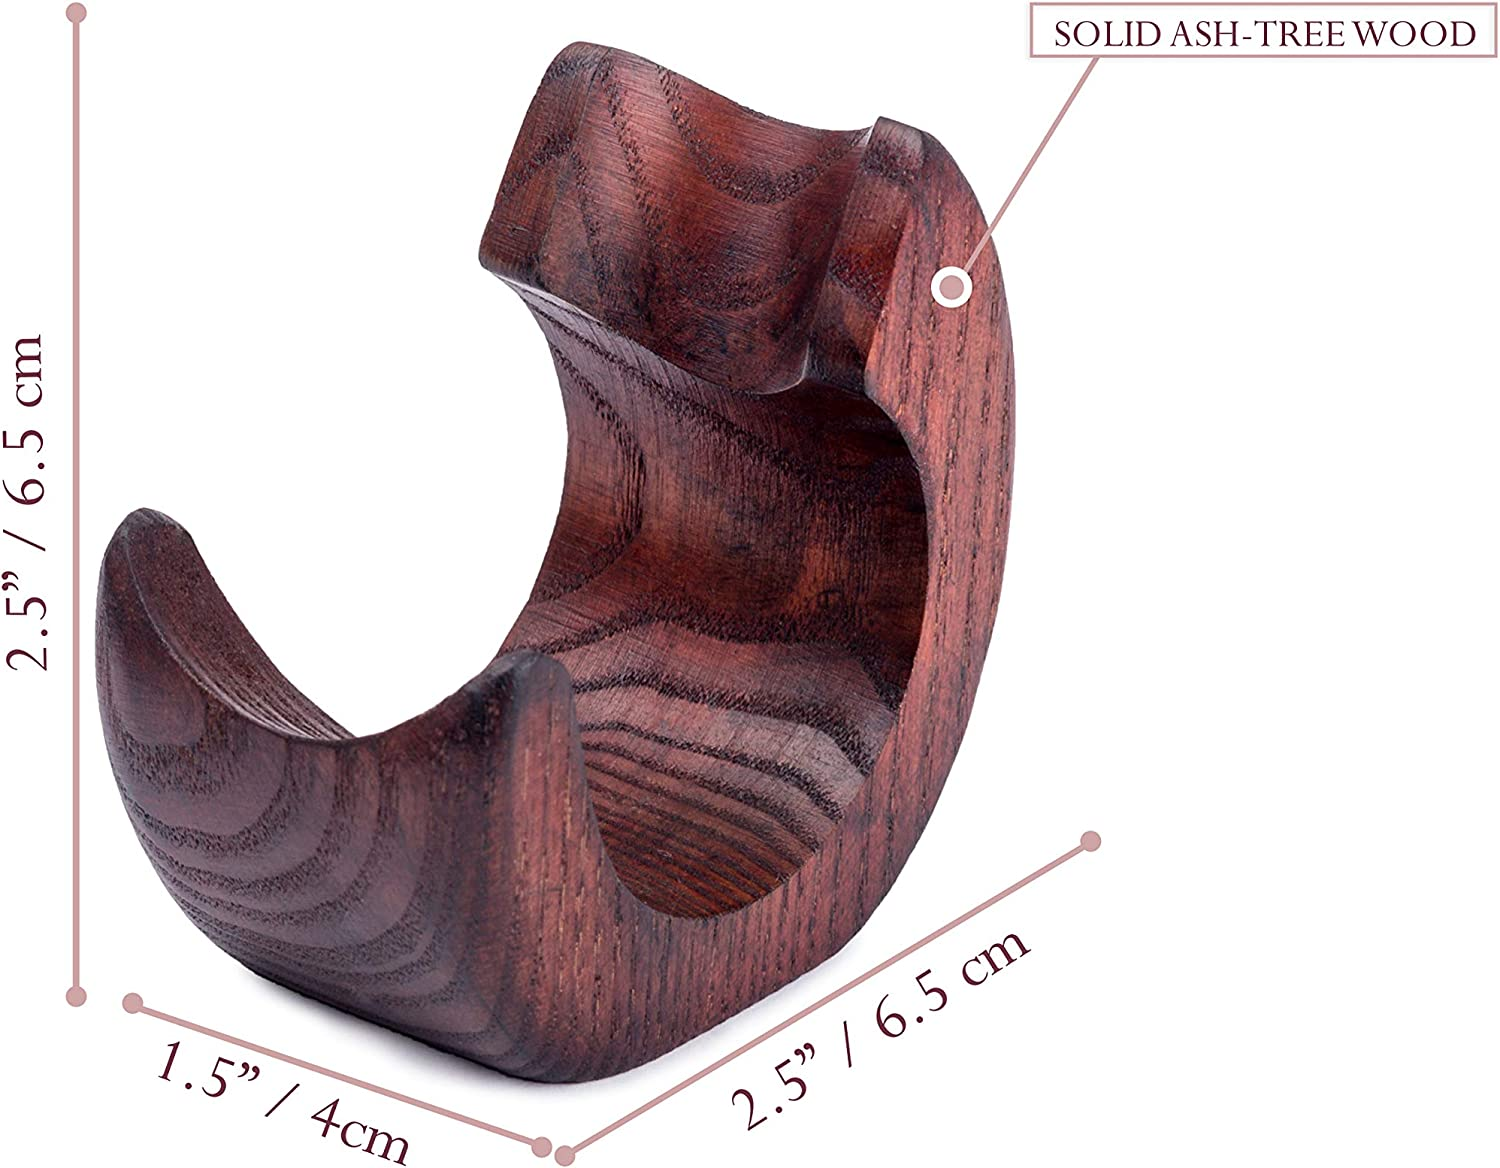 SNAIL Wooden Pipe Stand Display Top-table Rack Holder For 1 Tobacco Smoking Pipe Dr Watson